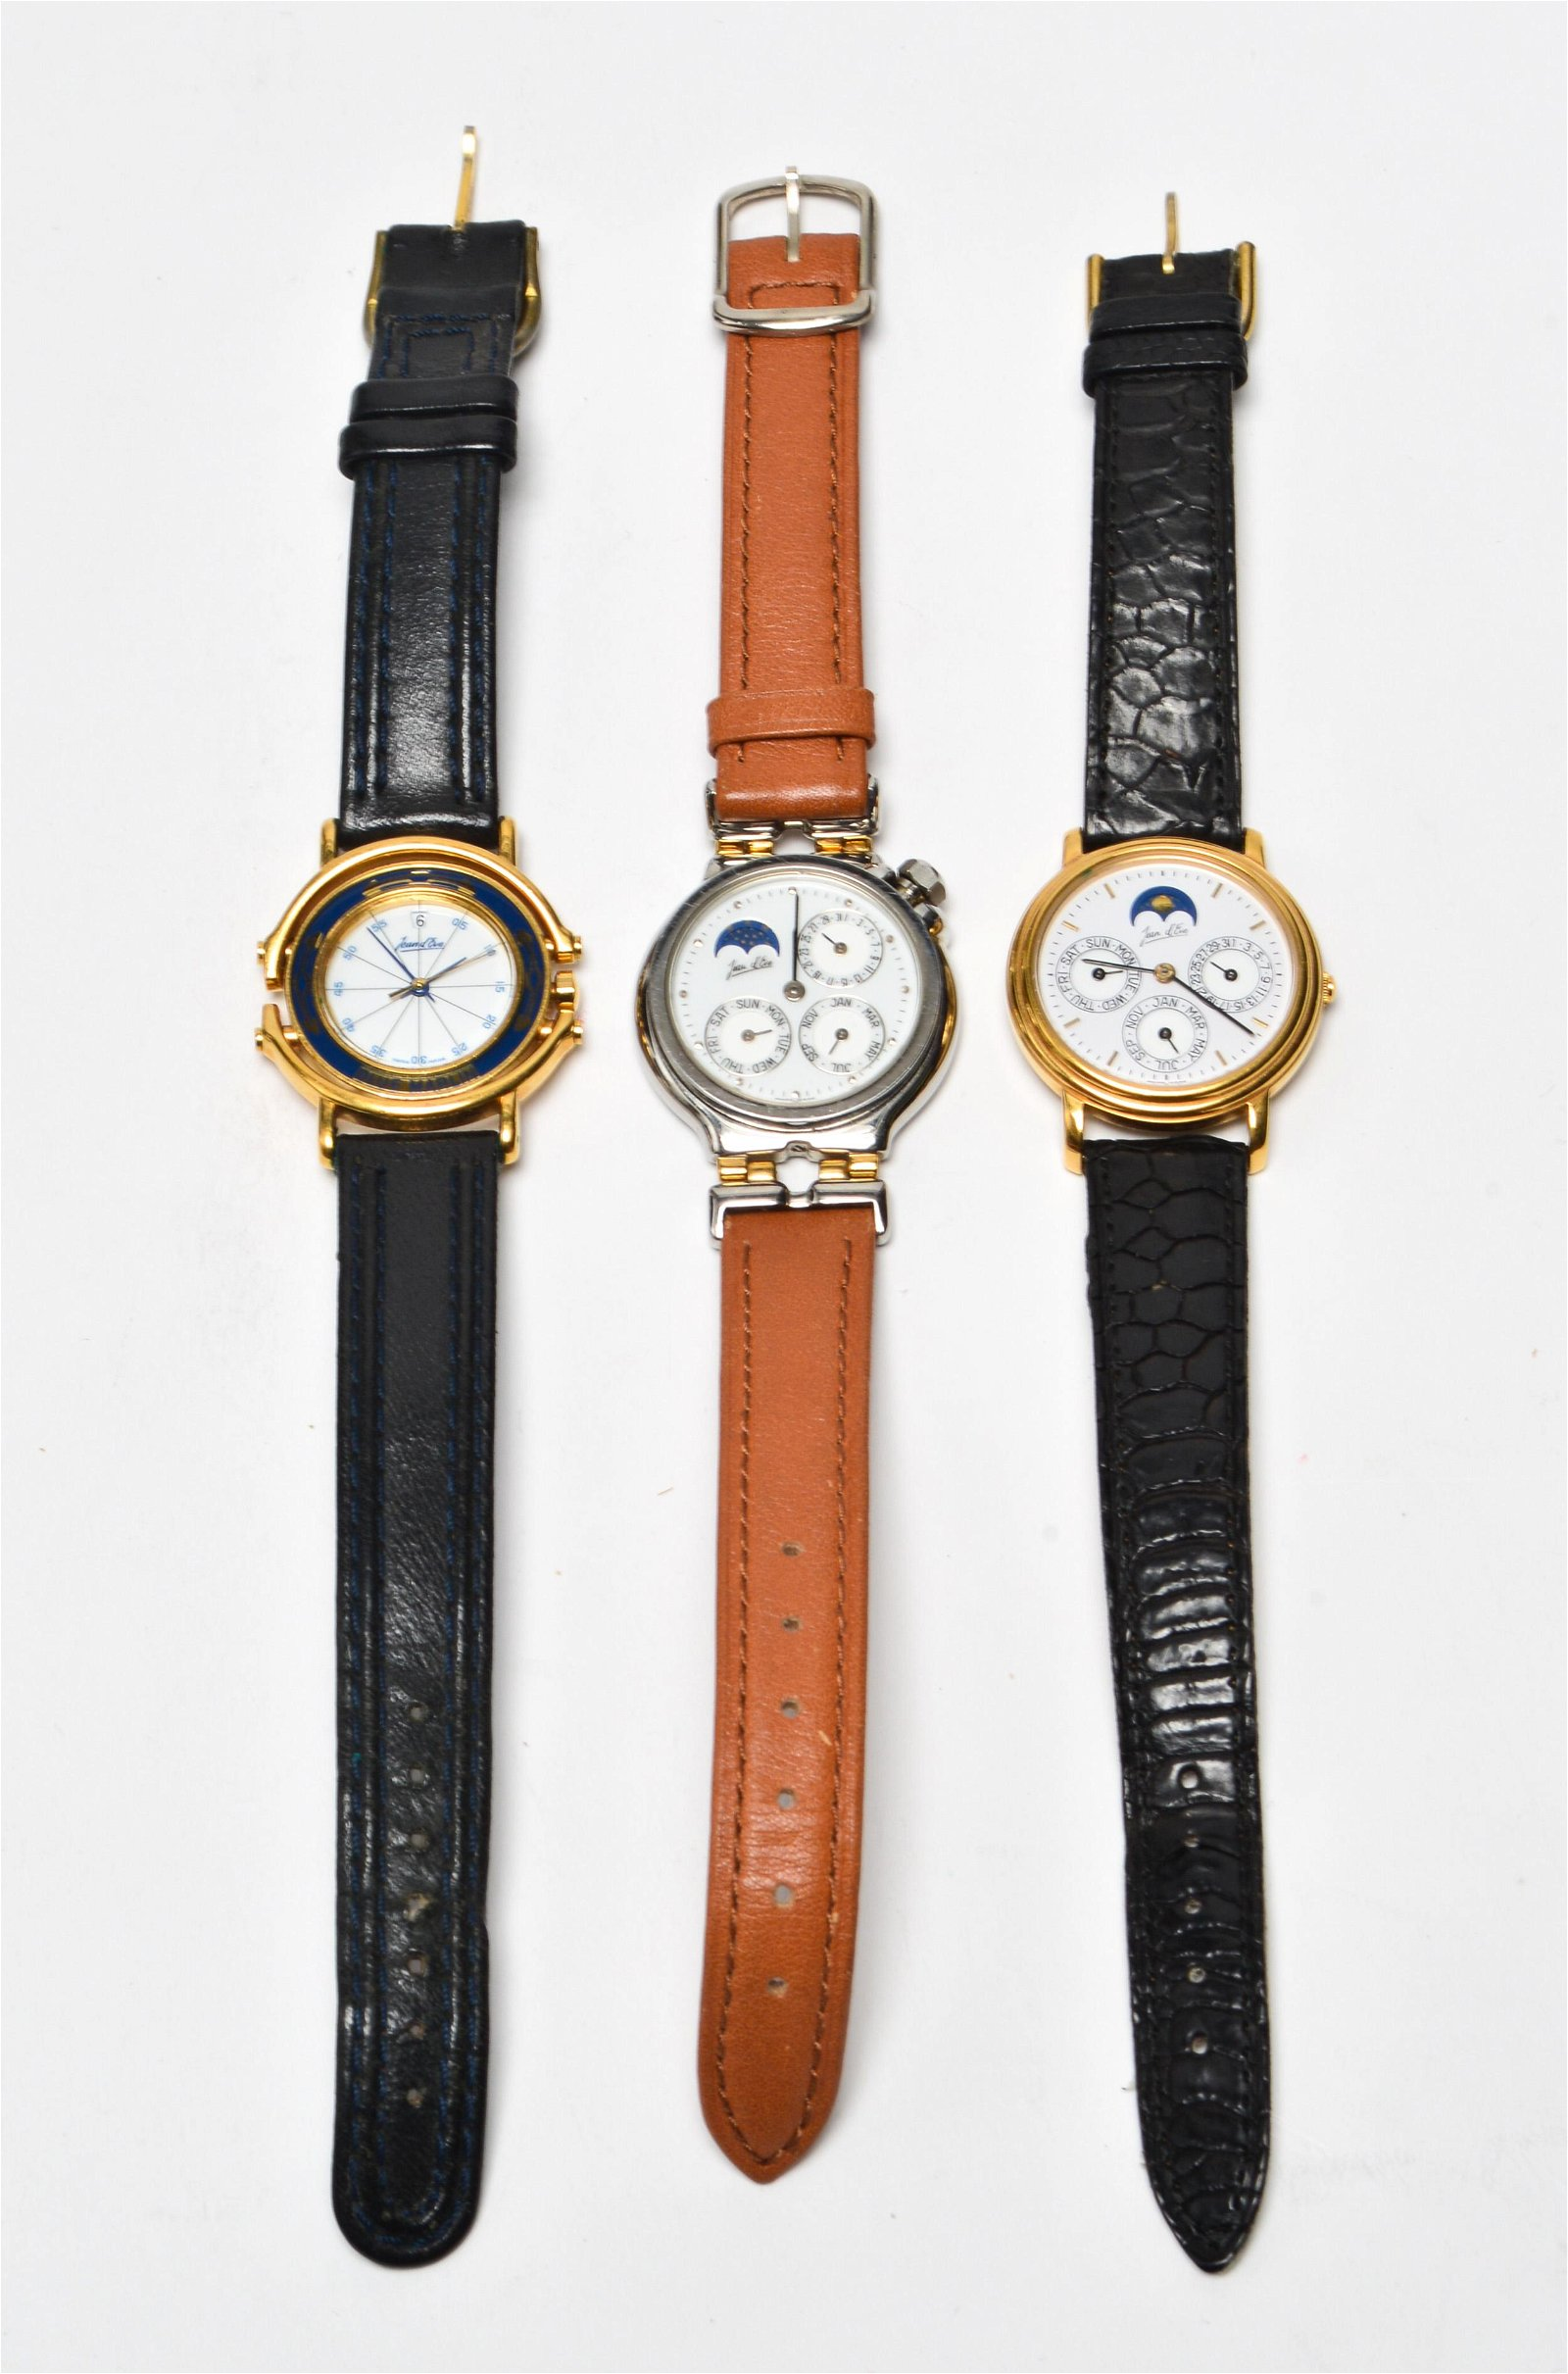 Jean d'Eve Ladies' Wrist Watches Group of 3